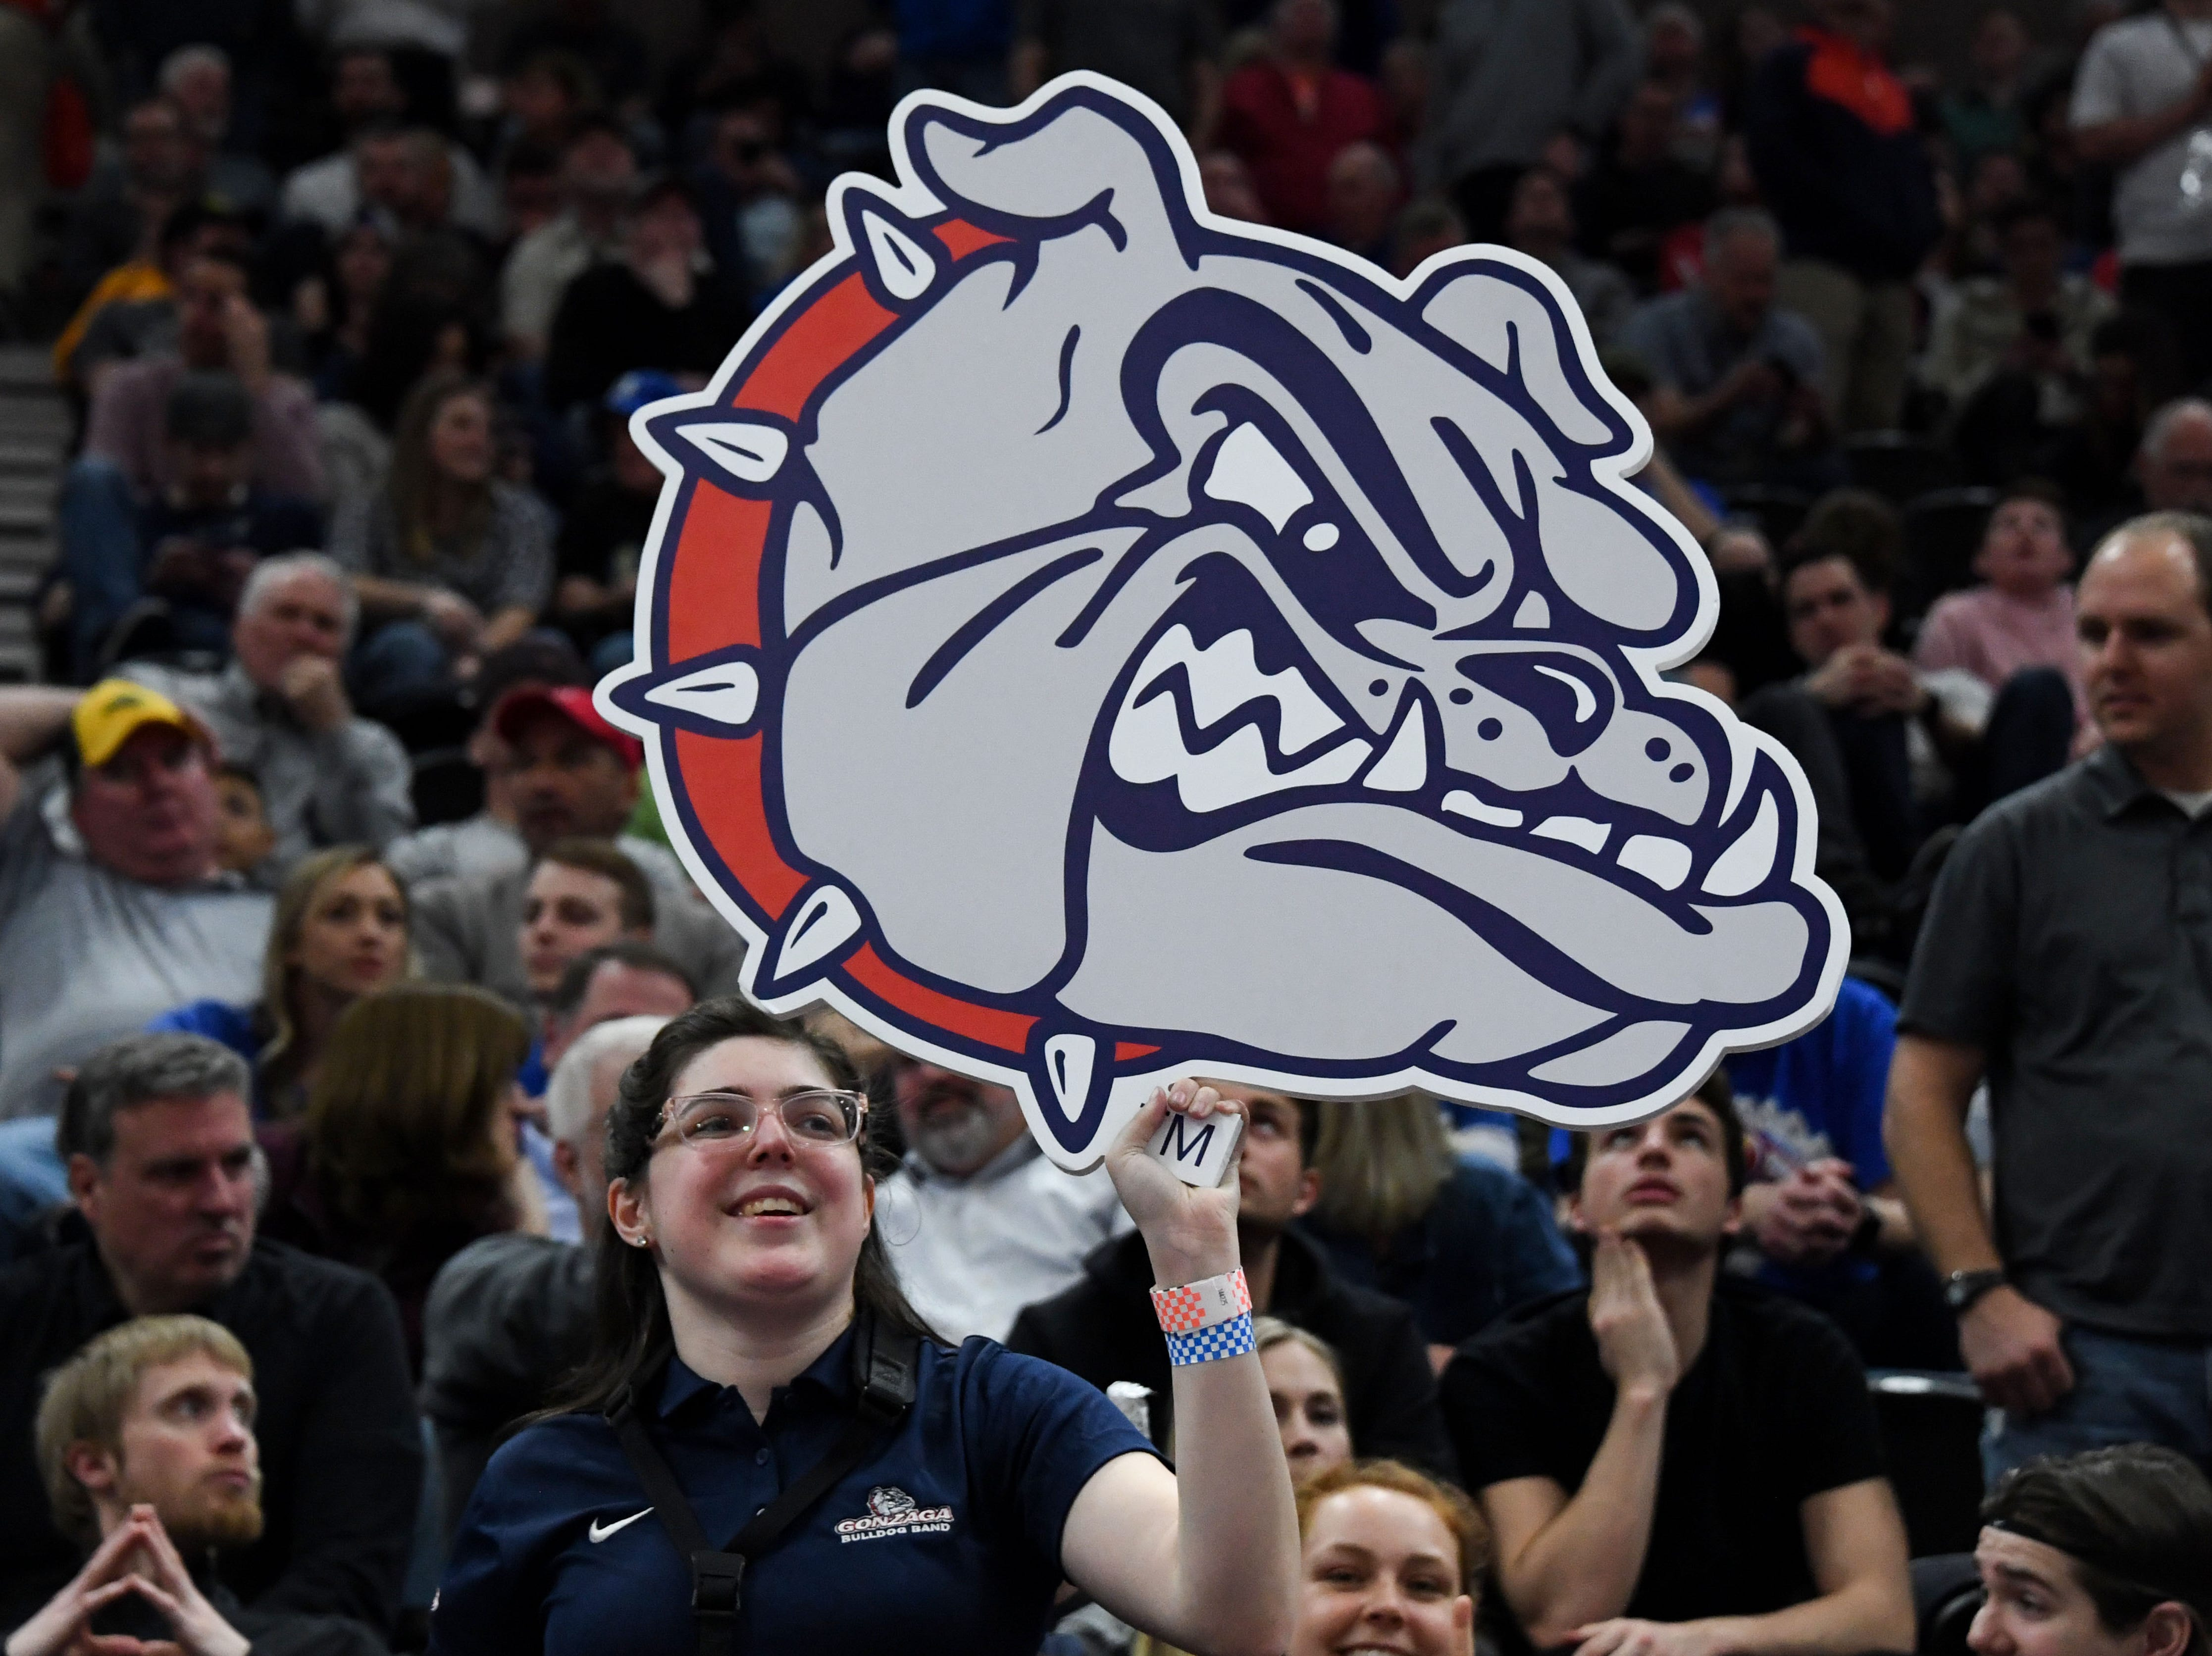 Round of 32: A Gonzaga fan holds up a Bulldogs sign during a game against the Baylor Bears.